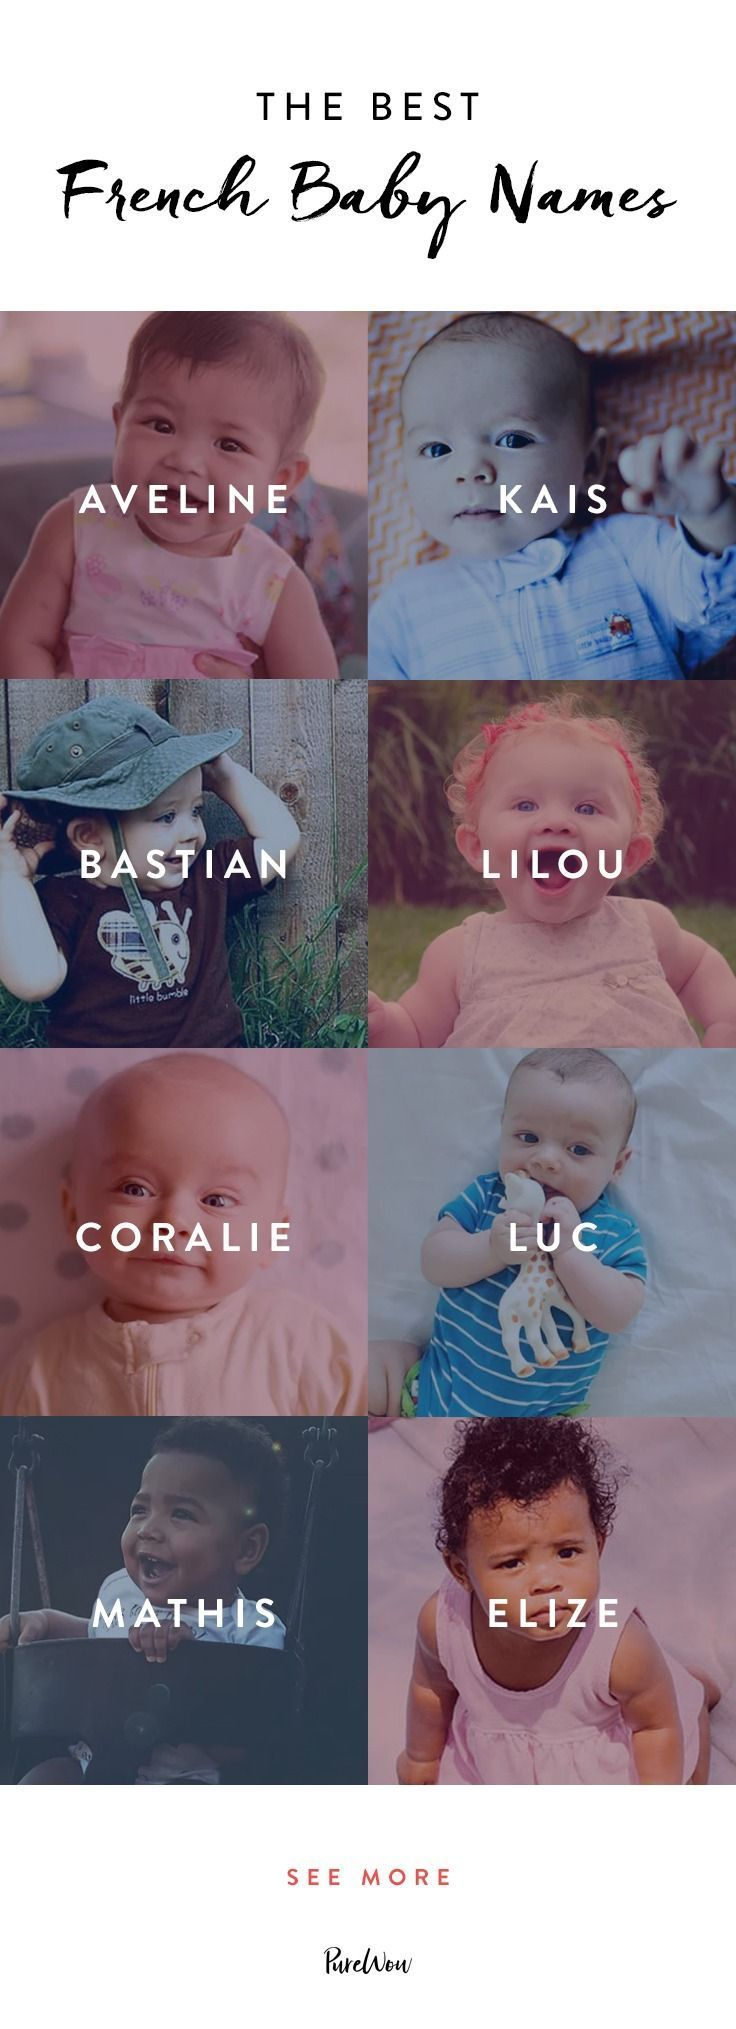 17 French Baby Names That Are Prime for an American Takeover